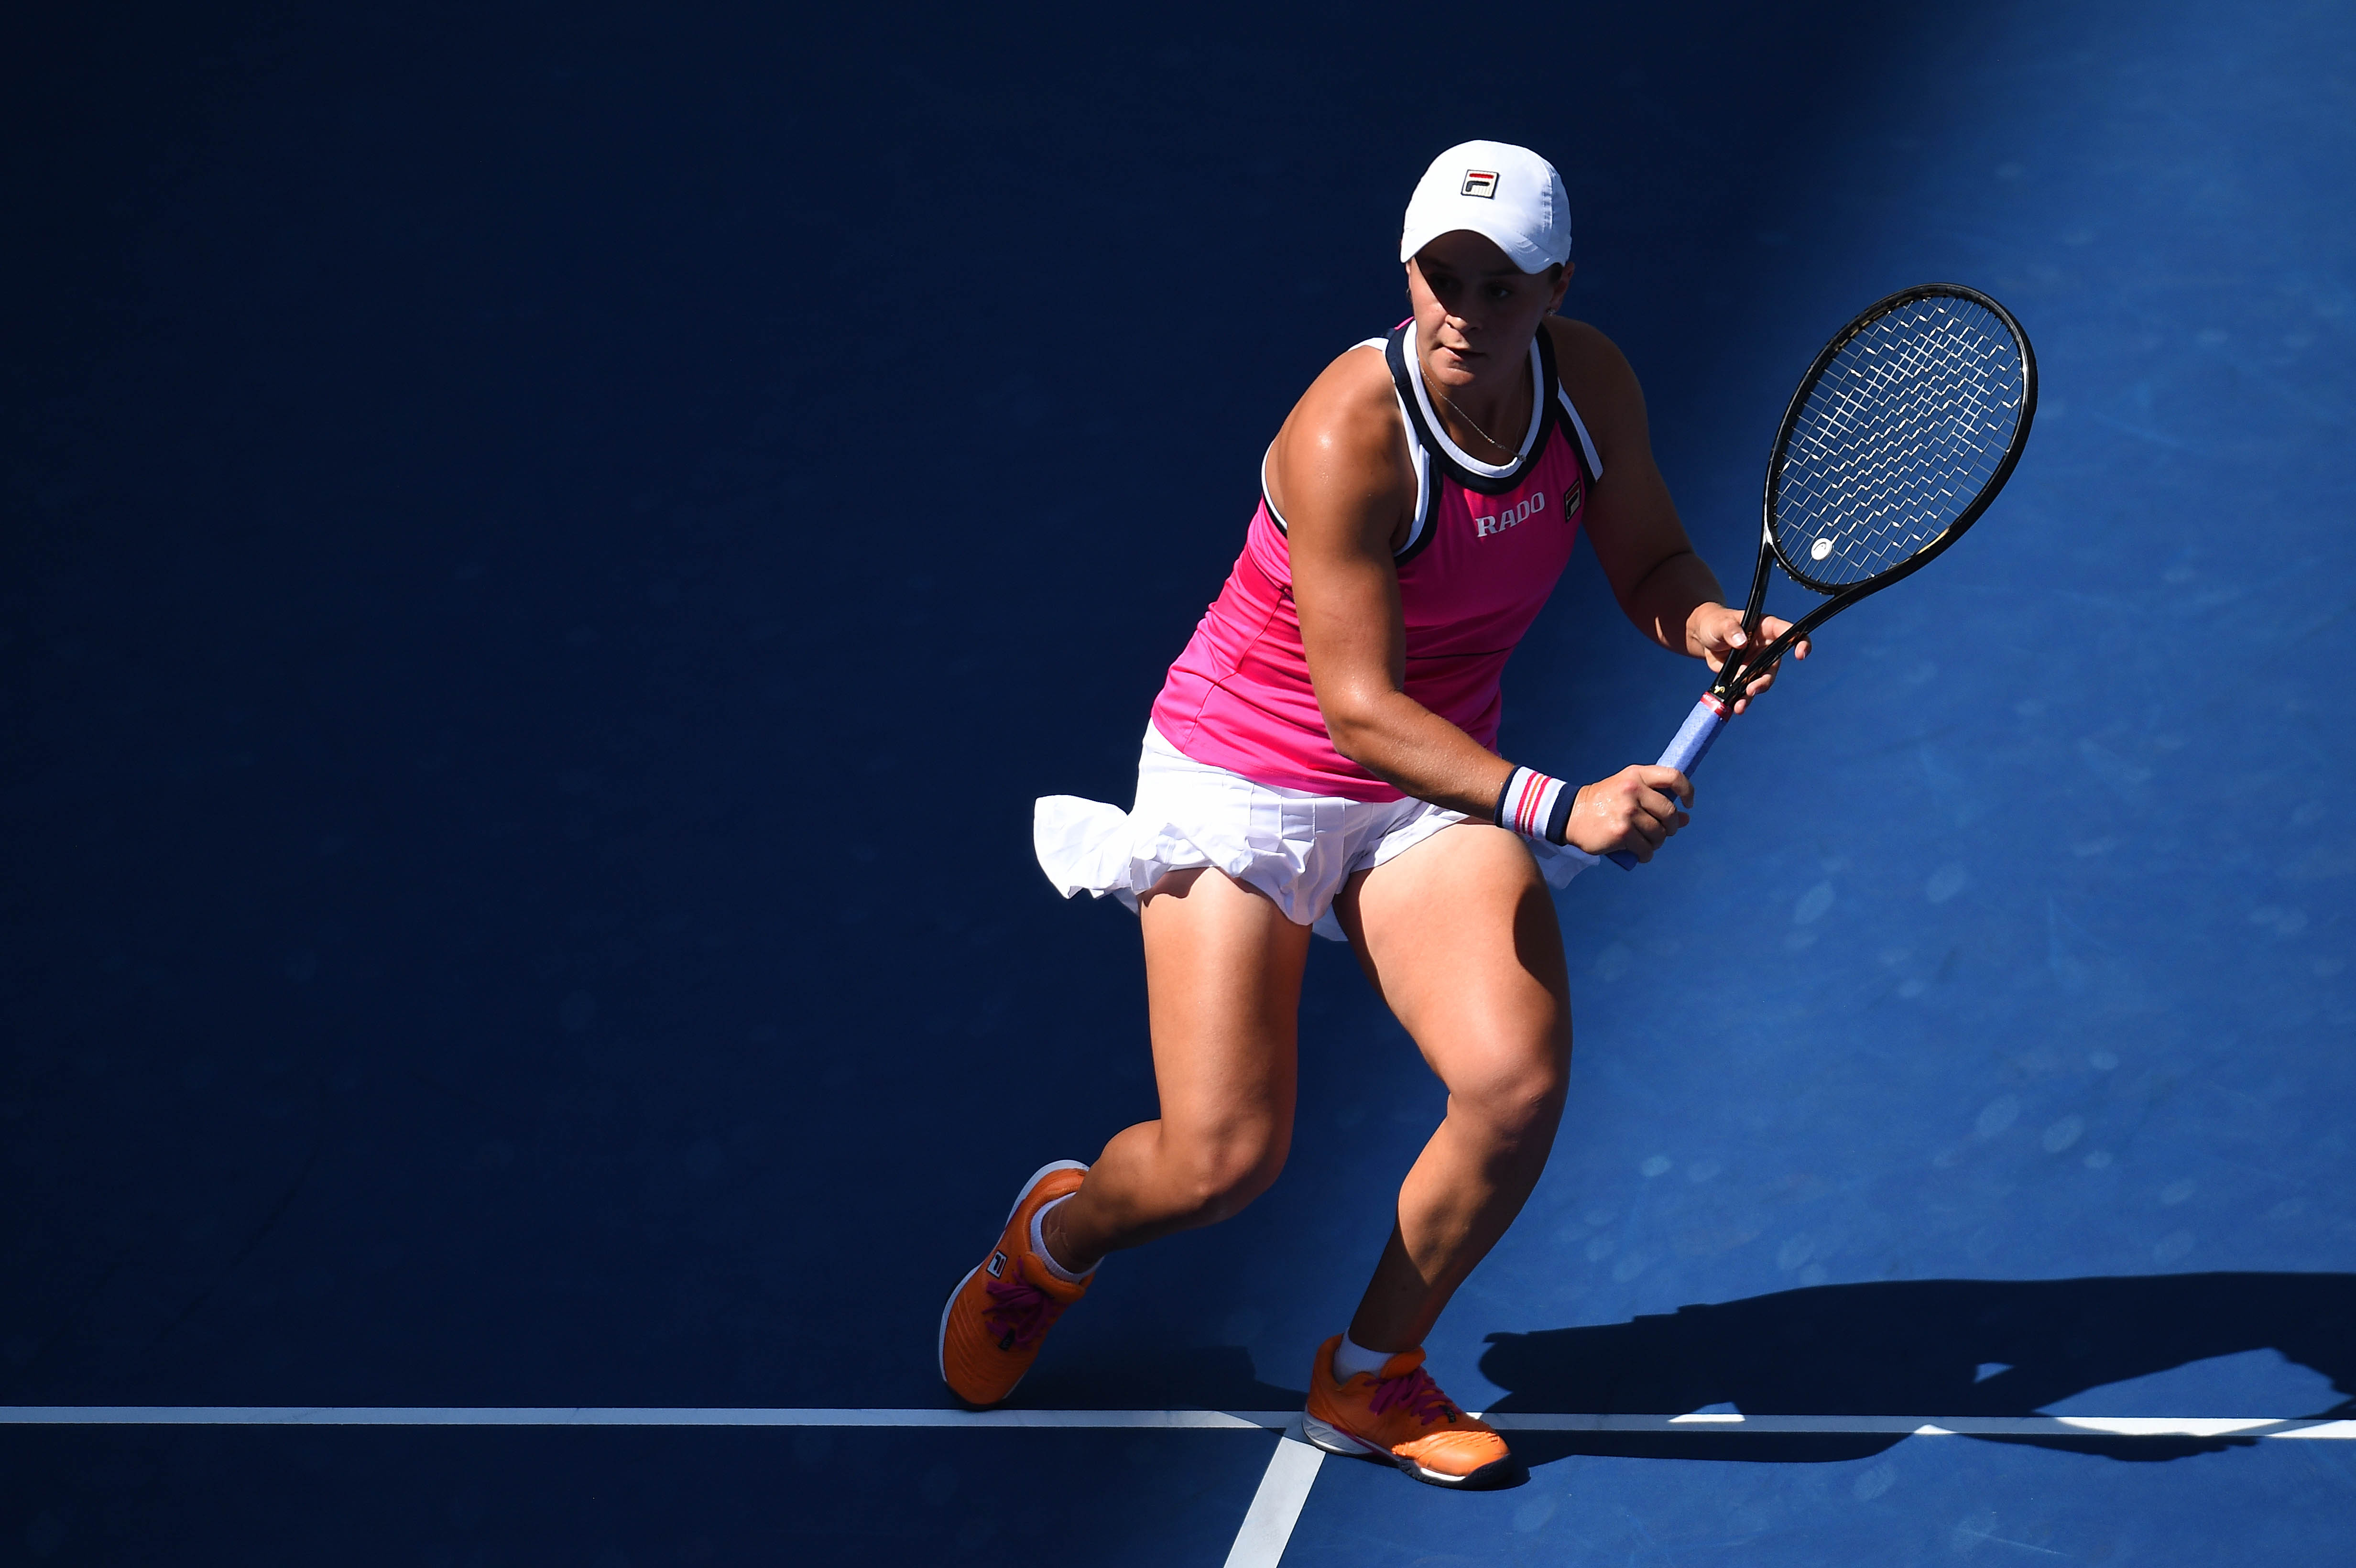 Ashleigh Barty volleying during her third round match at the 2019 US Open